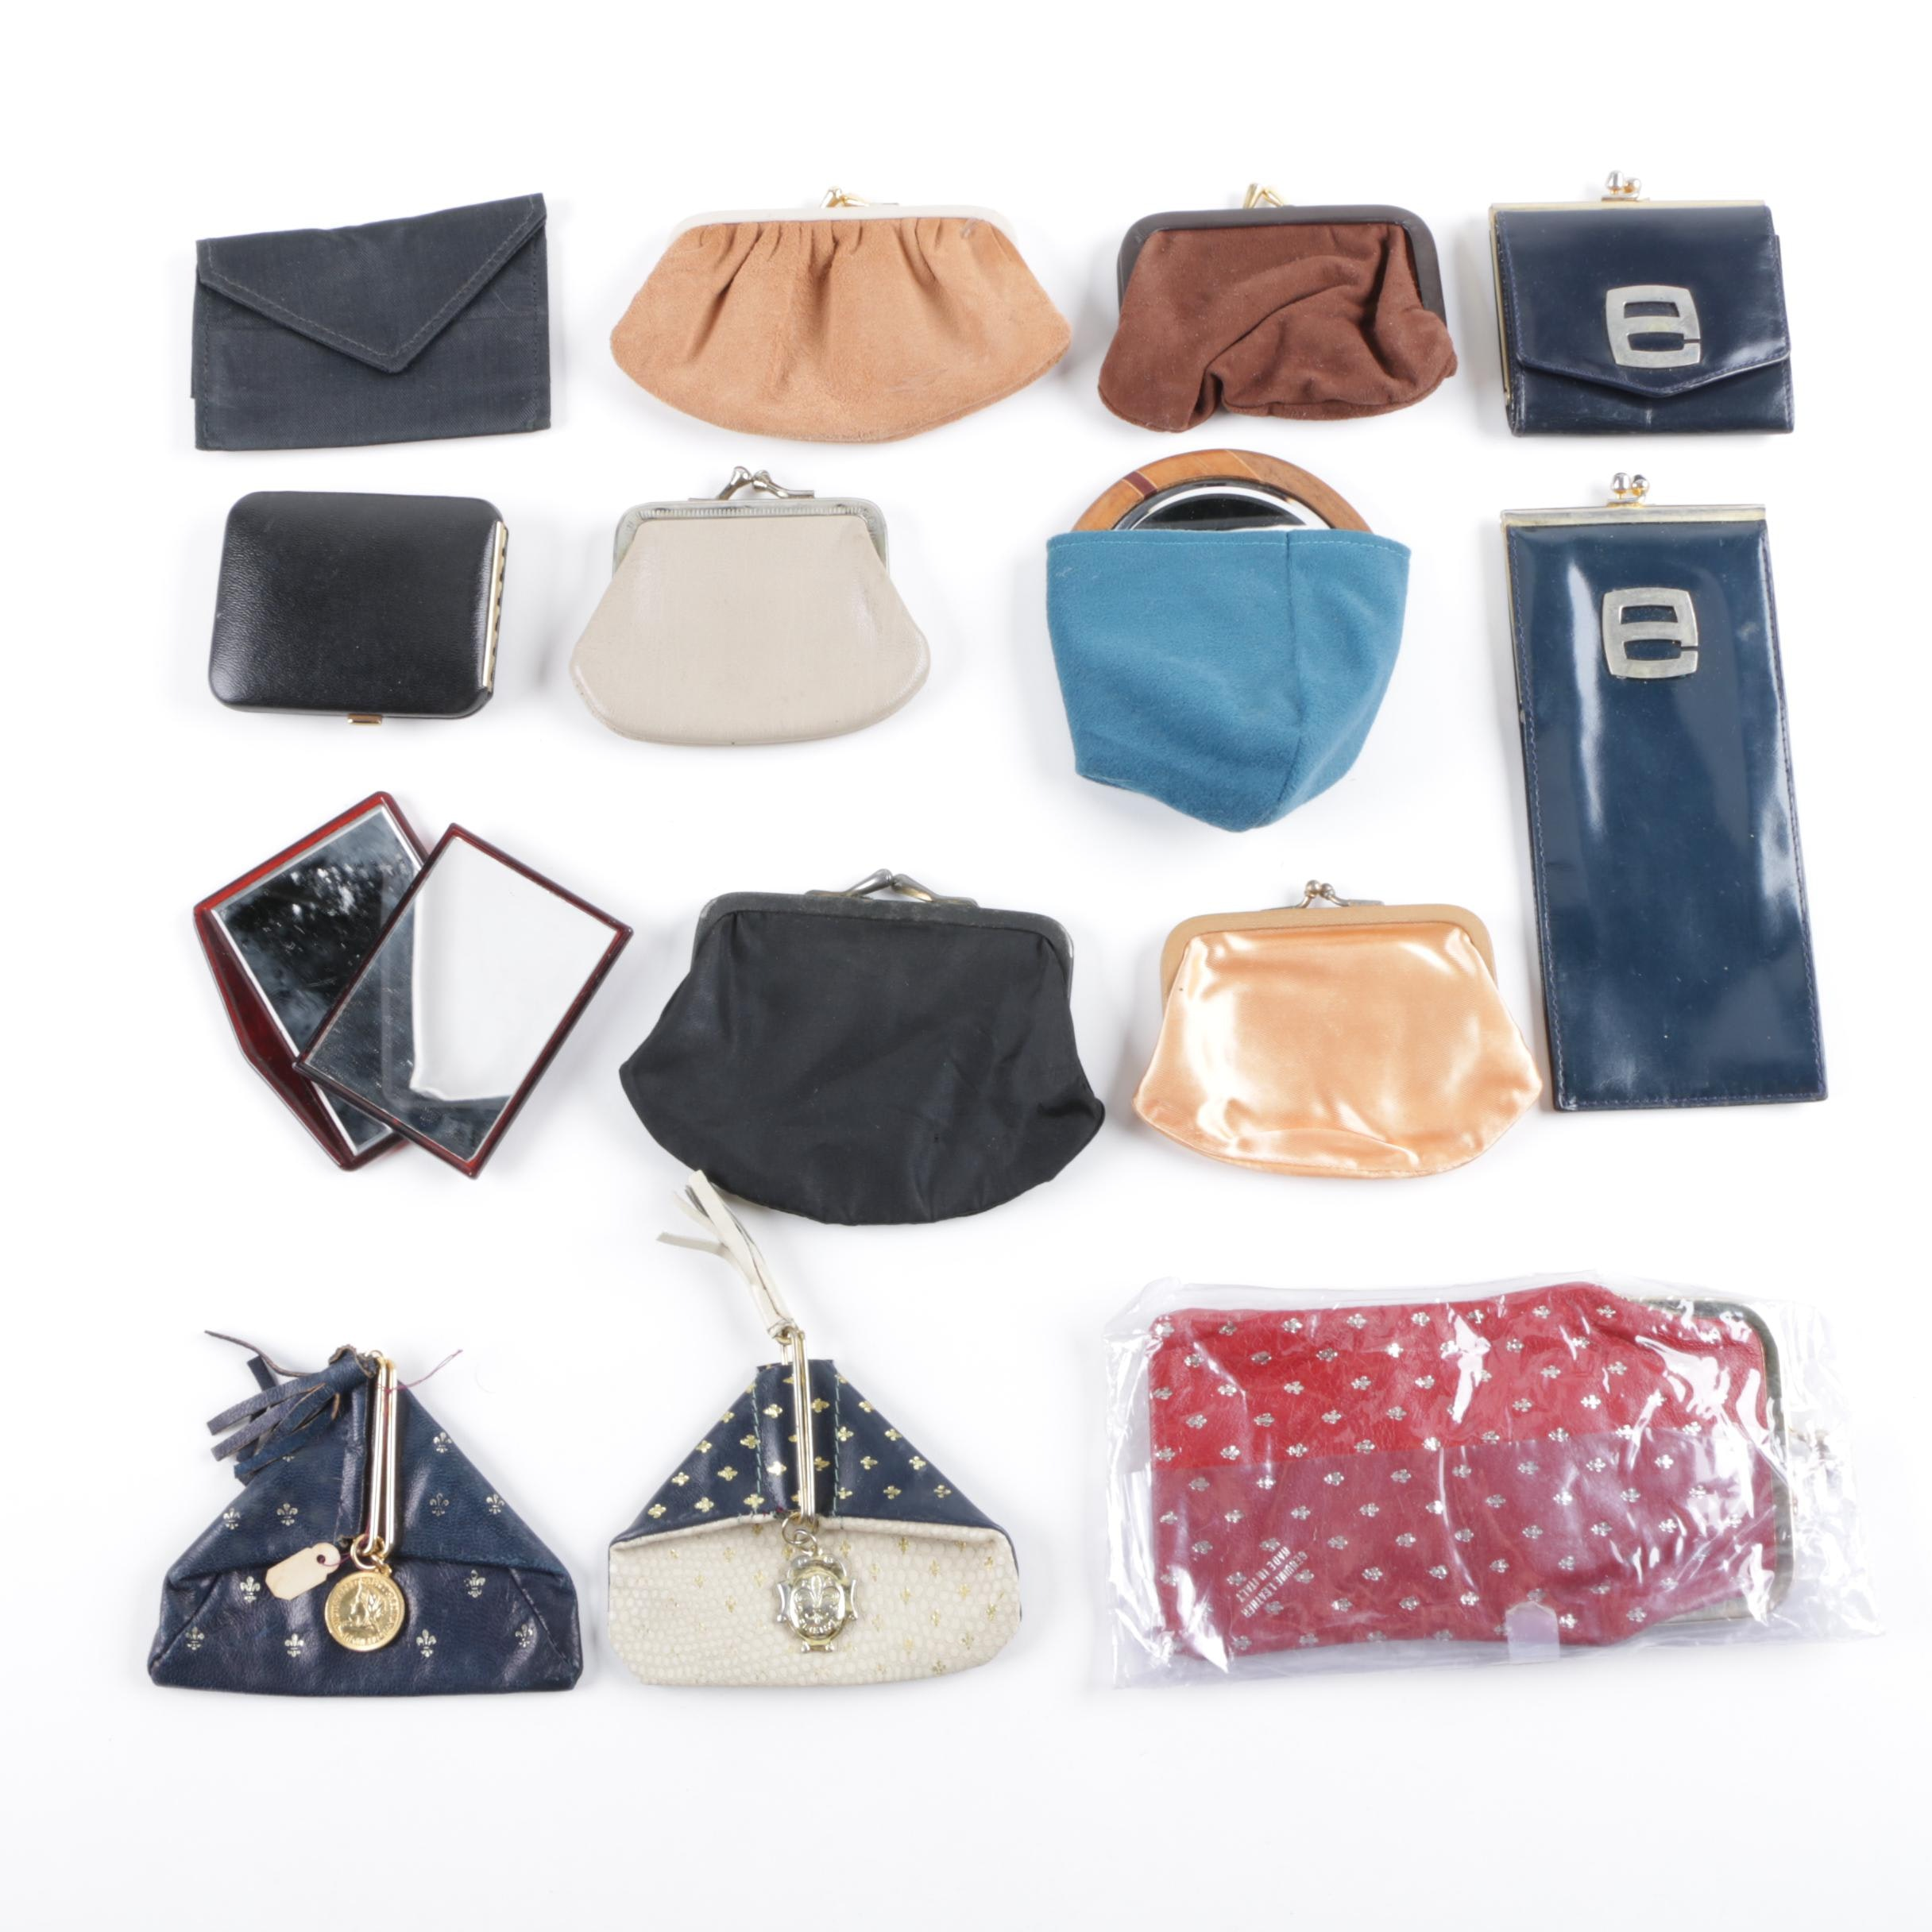 Vintage Coin Purses and Accessories Including Pierre Cardin